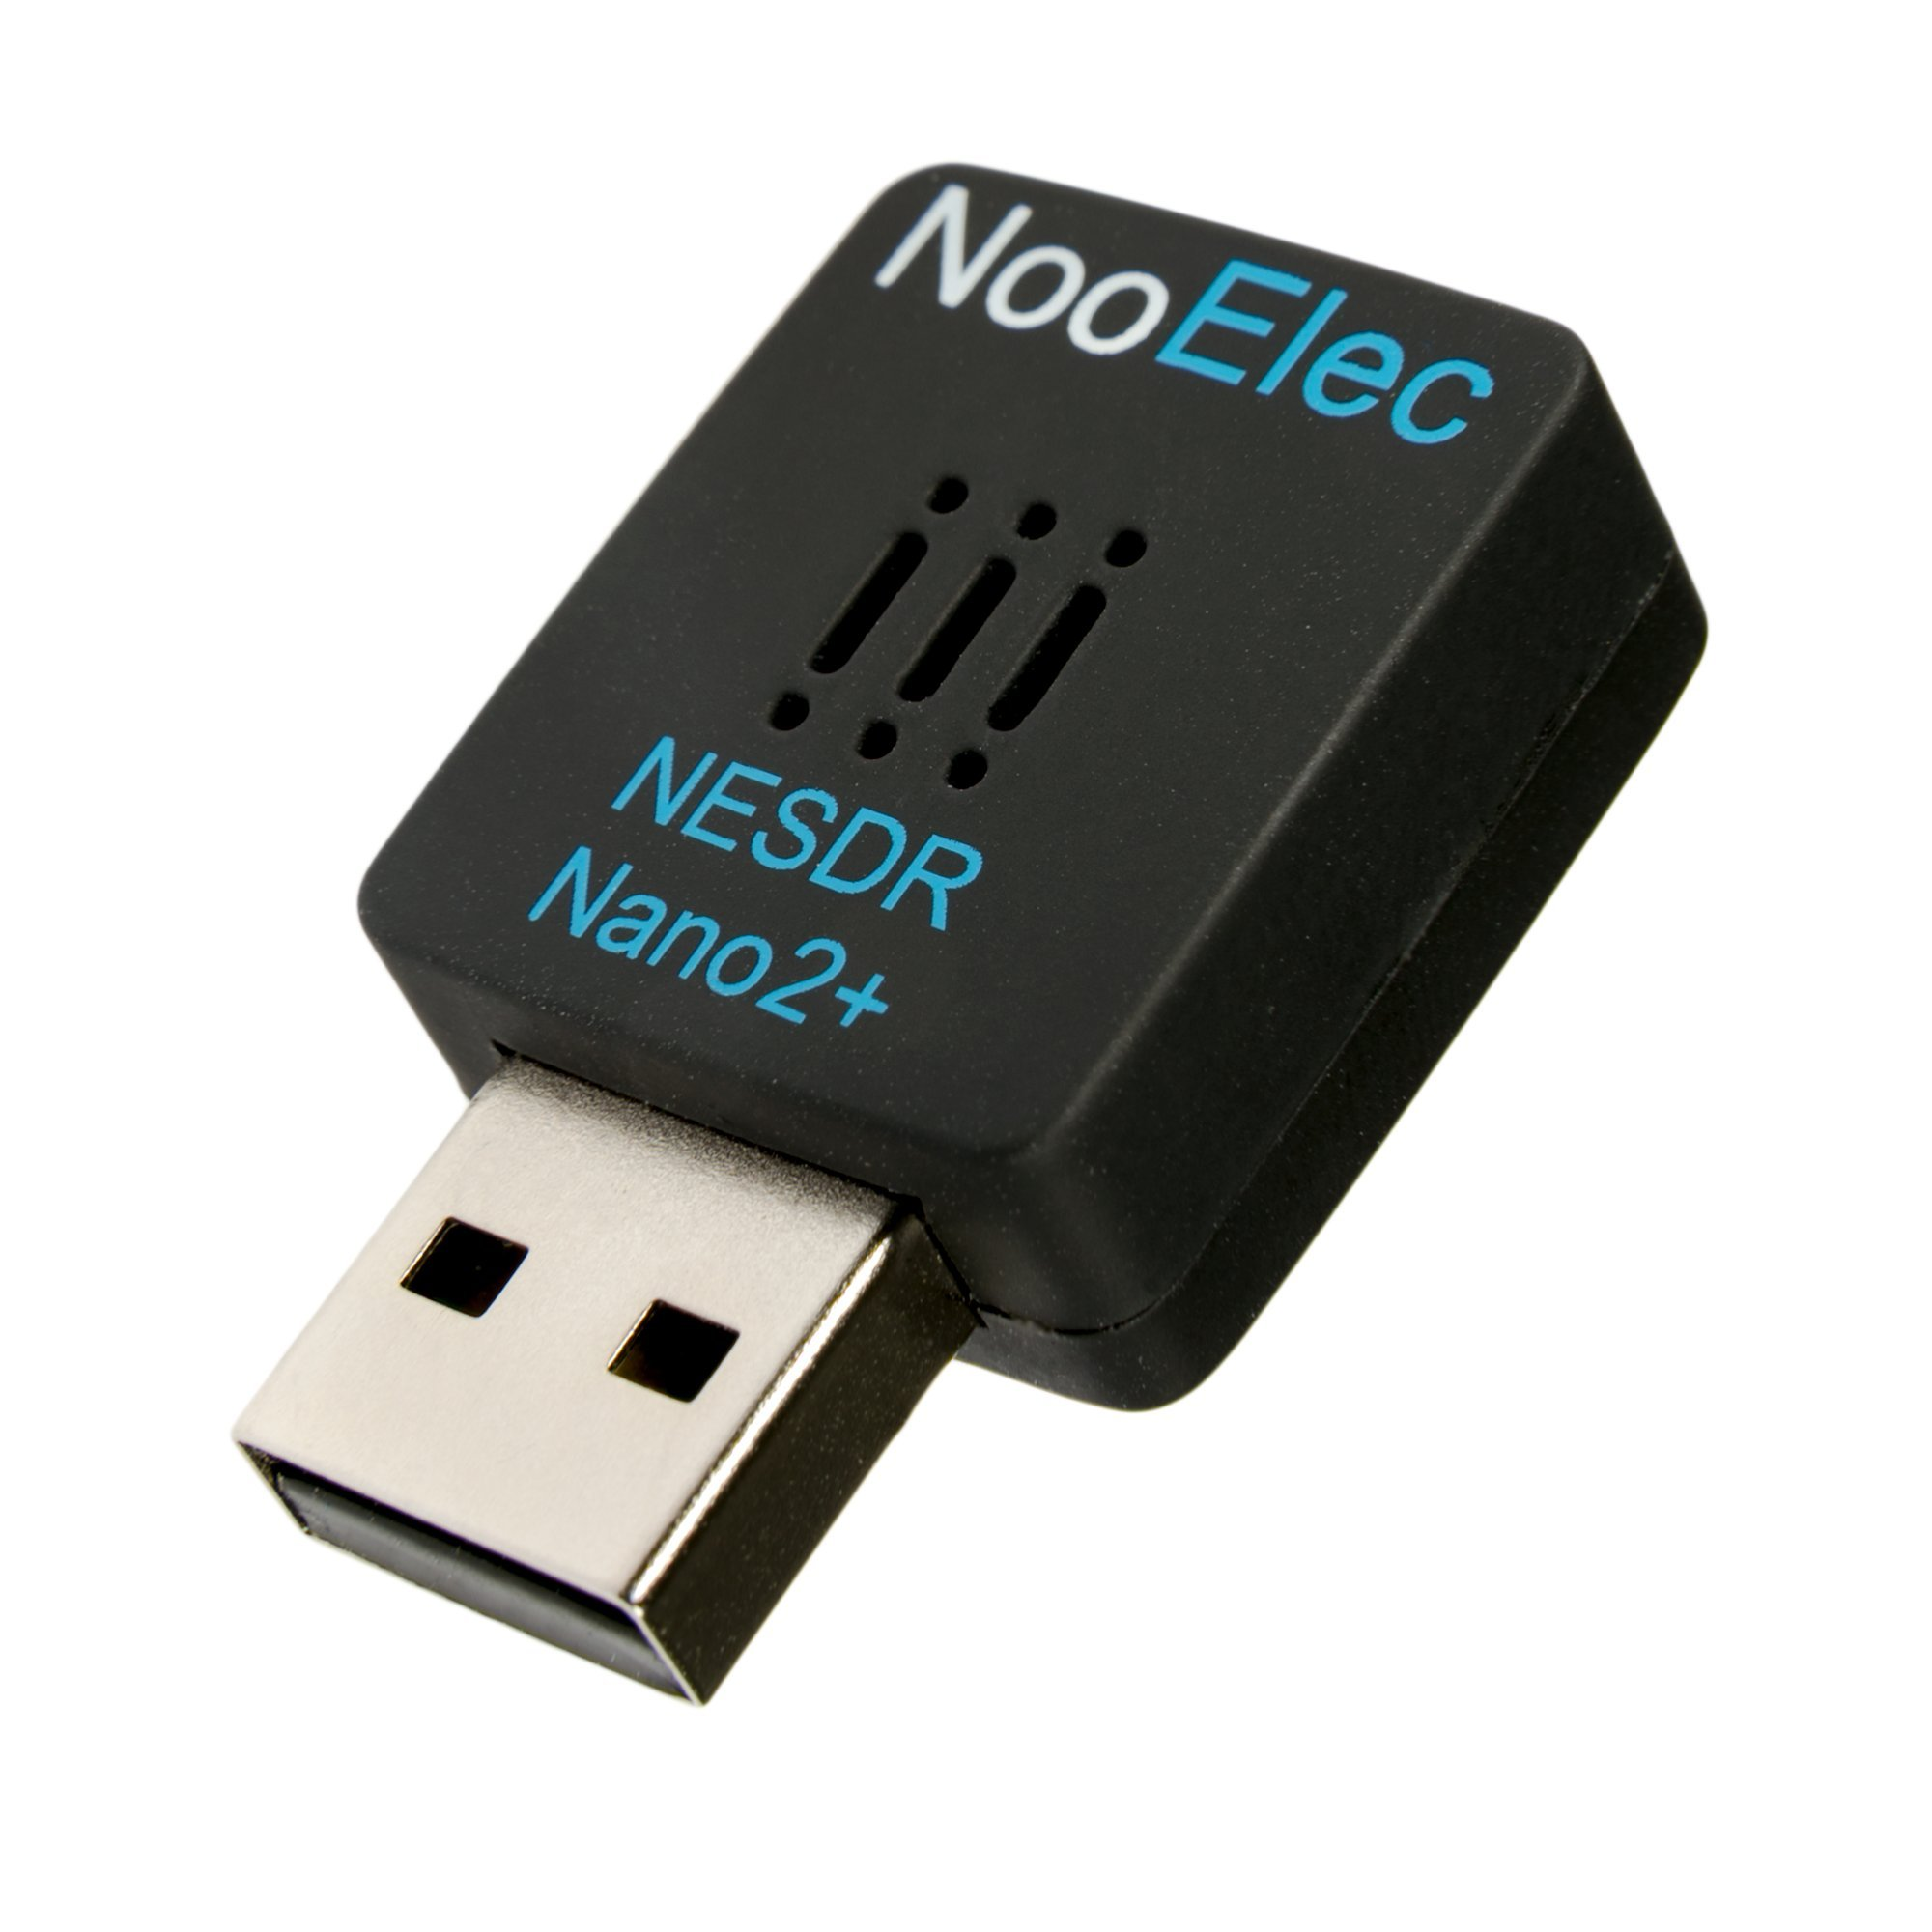 NooElec NESDR Nano 2+ Tiny Black RTL-SDR USB Set (RTL2832U + R820T2) with Ultra-Low Phase Noise 0.5PPM TCXO, MCX Antenna & Remote Control; Software Defined Radio, DVB-T and ADS-B Compatible, ESD Safe by NooElec